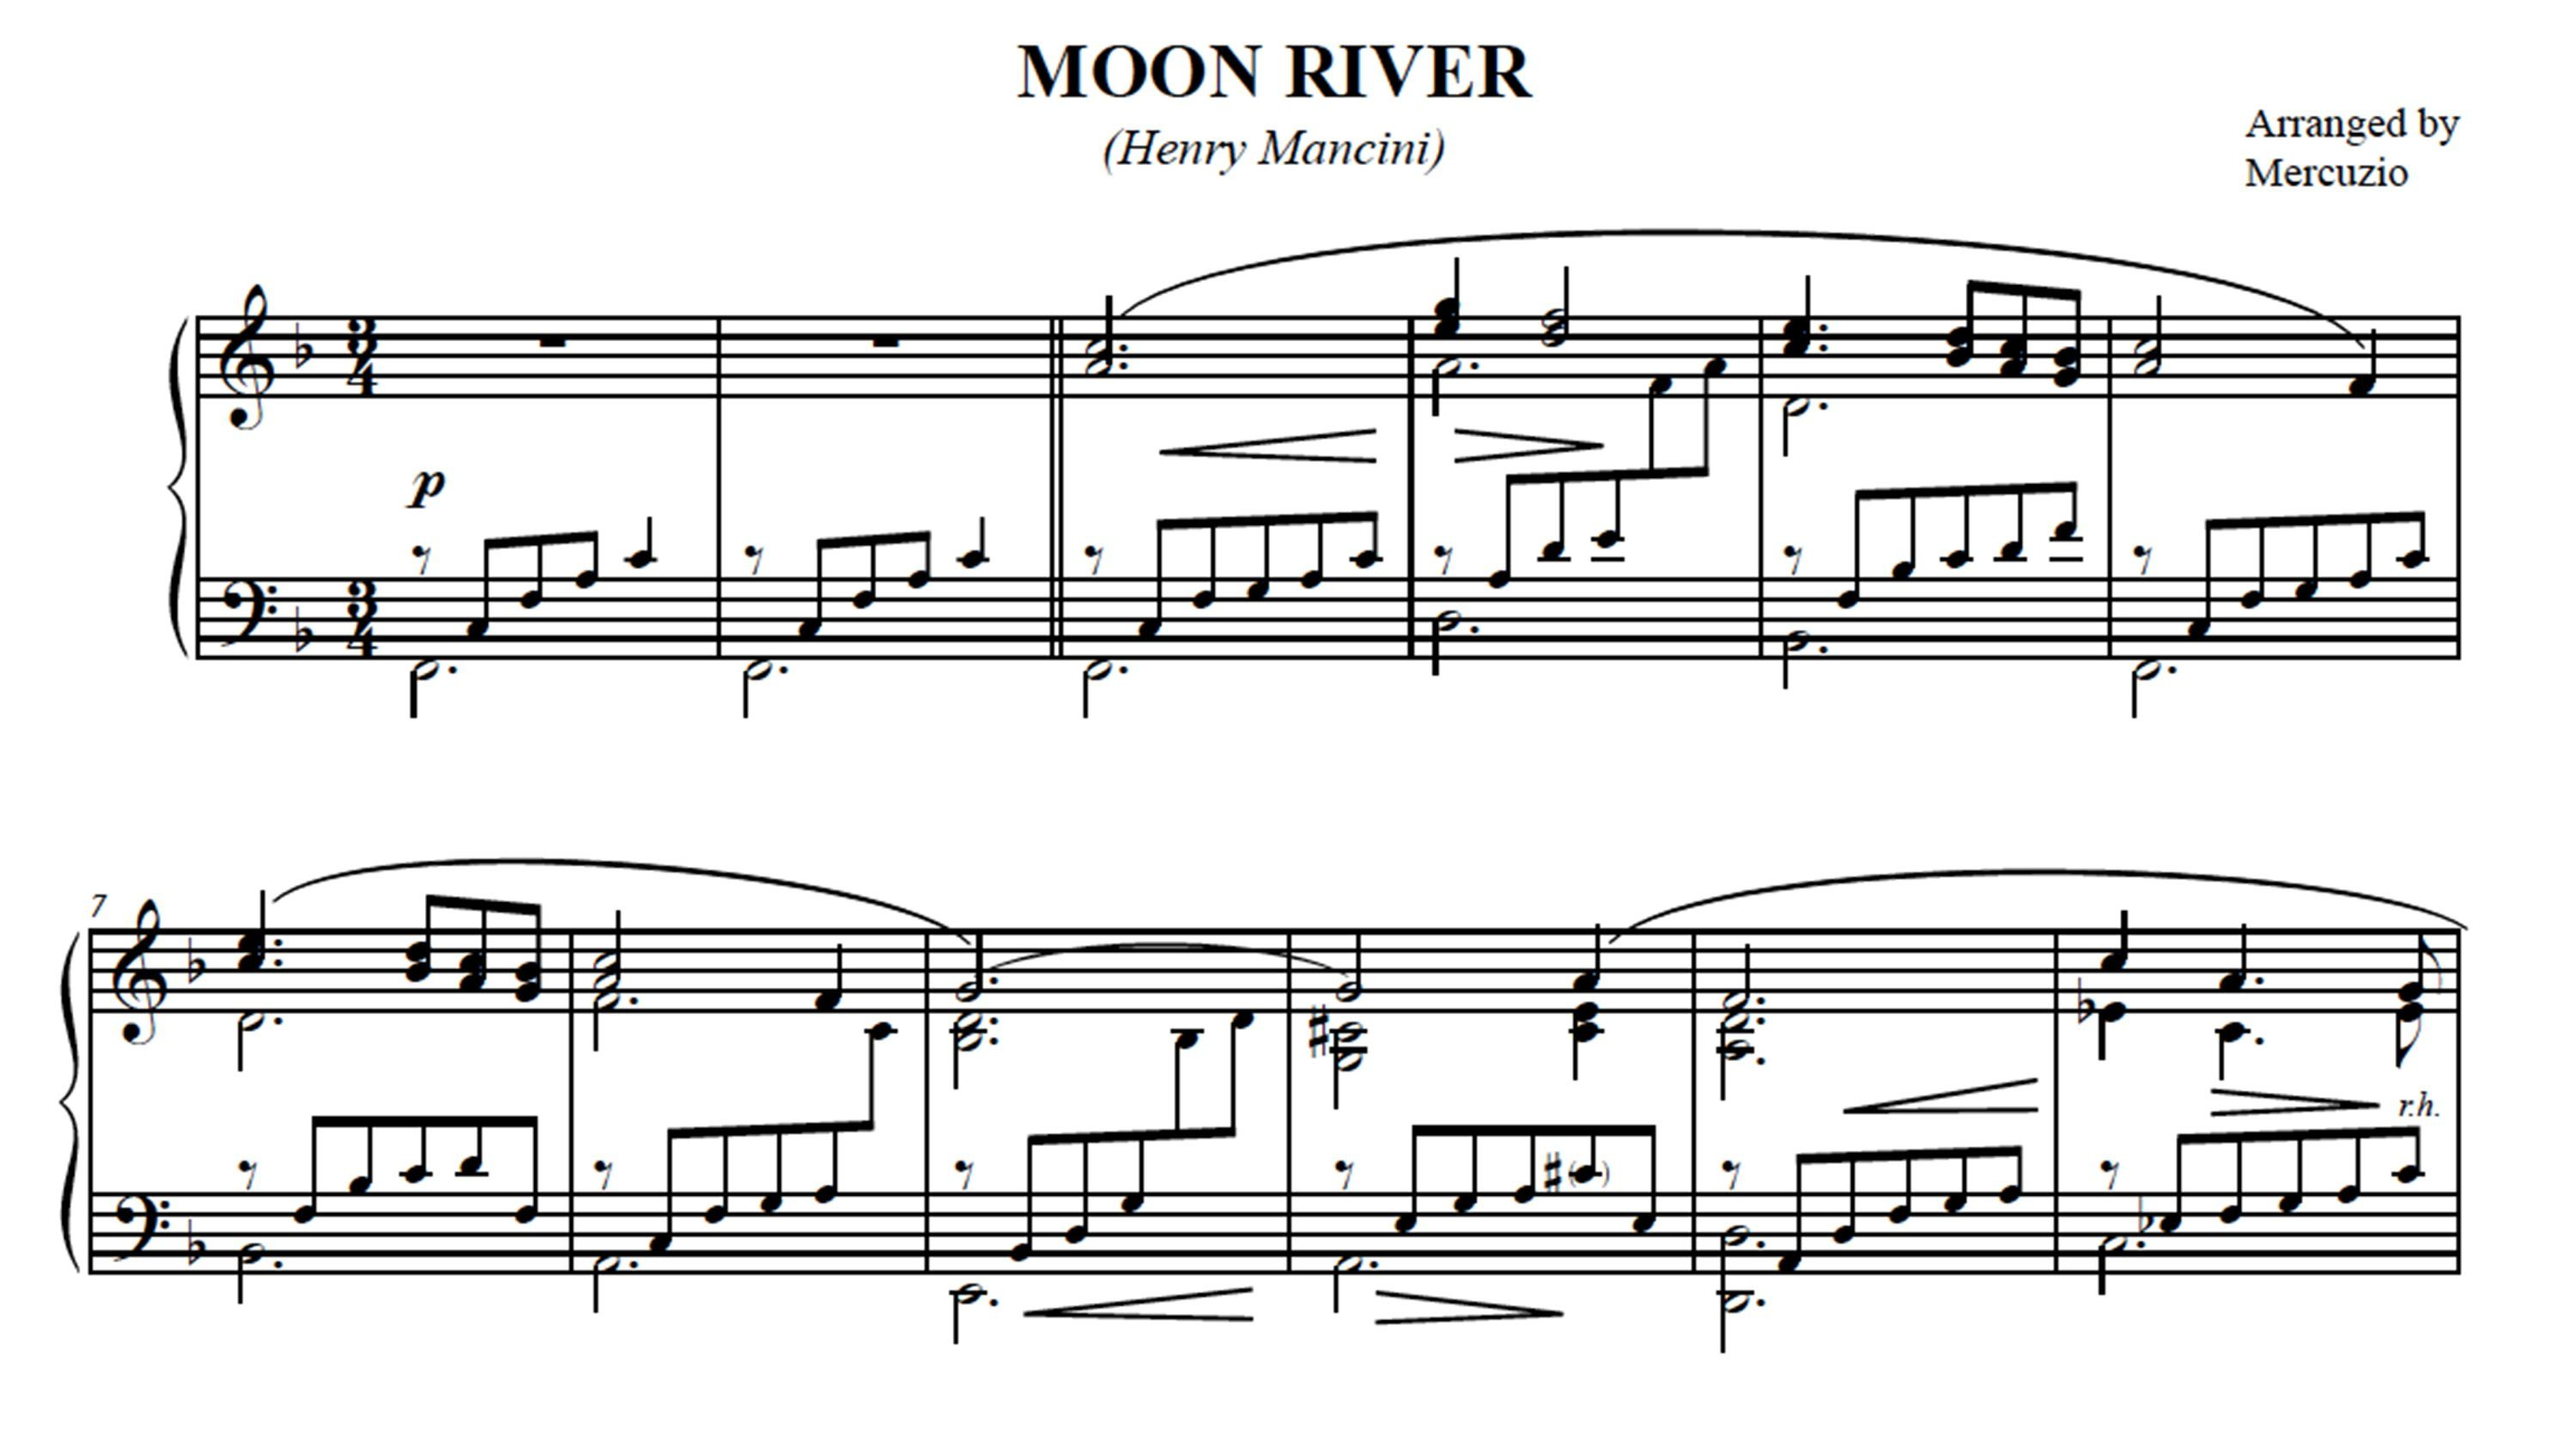 Moon River Henry Mancini Arranged For Piano By Mercuzio Played